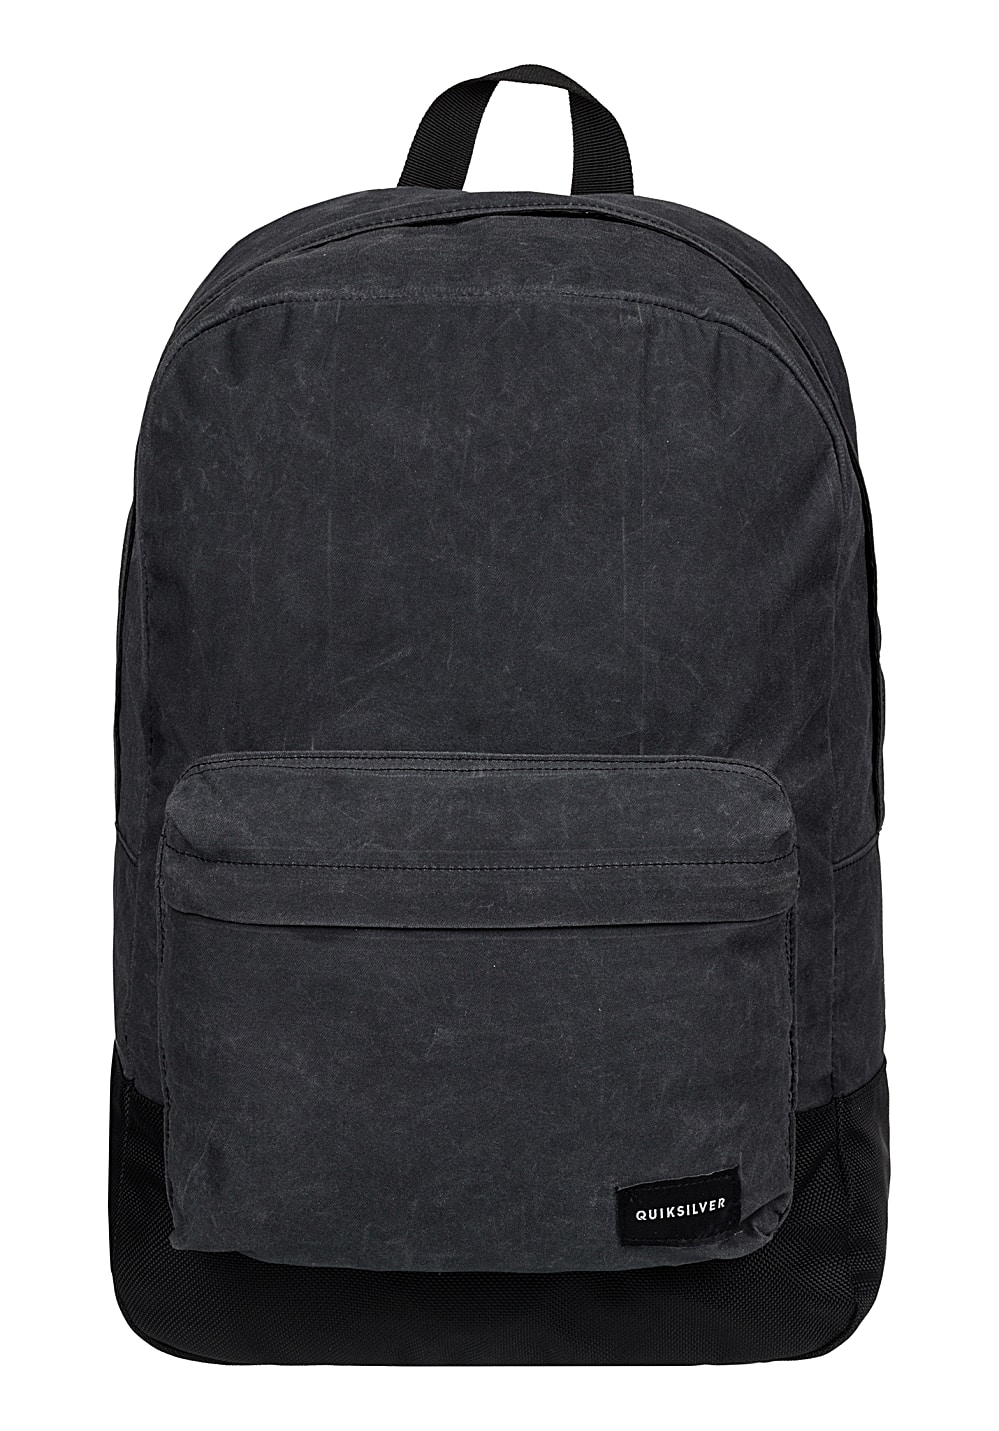 quiksilver night track rucksack f r herren schwarz planet sports. Black Bedroom Furniture Sets. Home Design Ideas